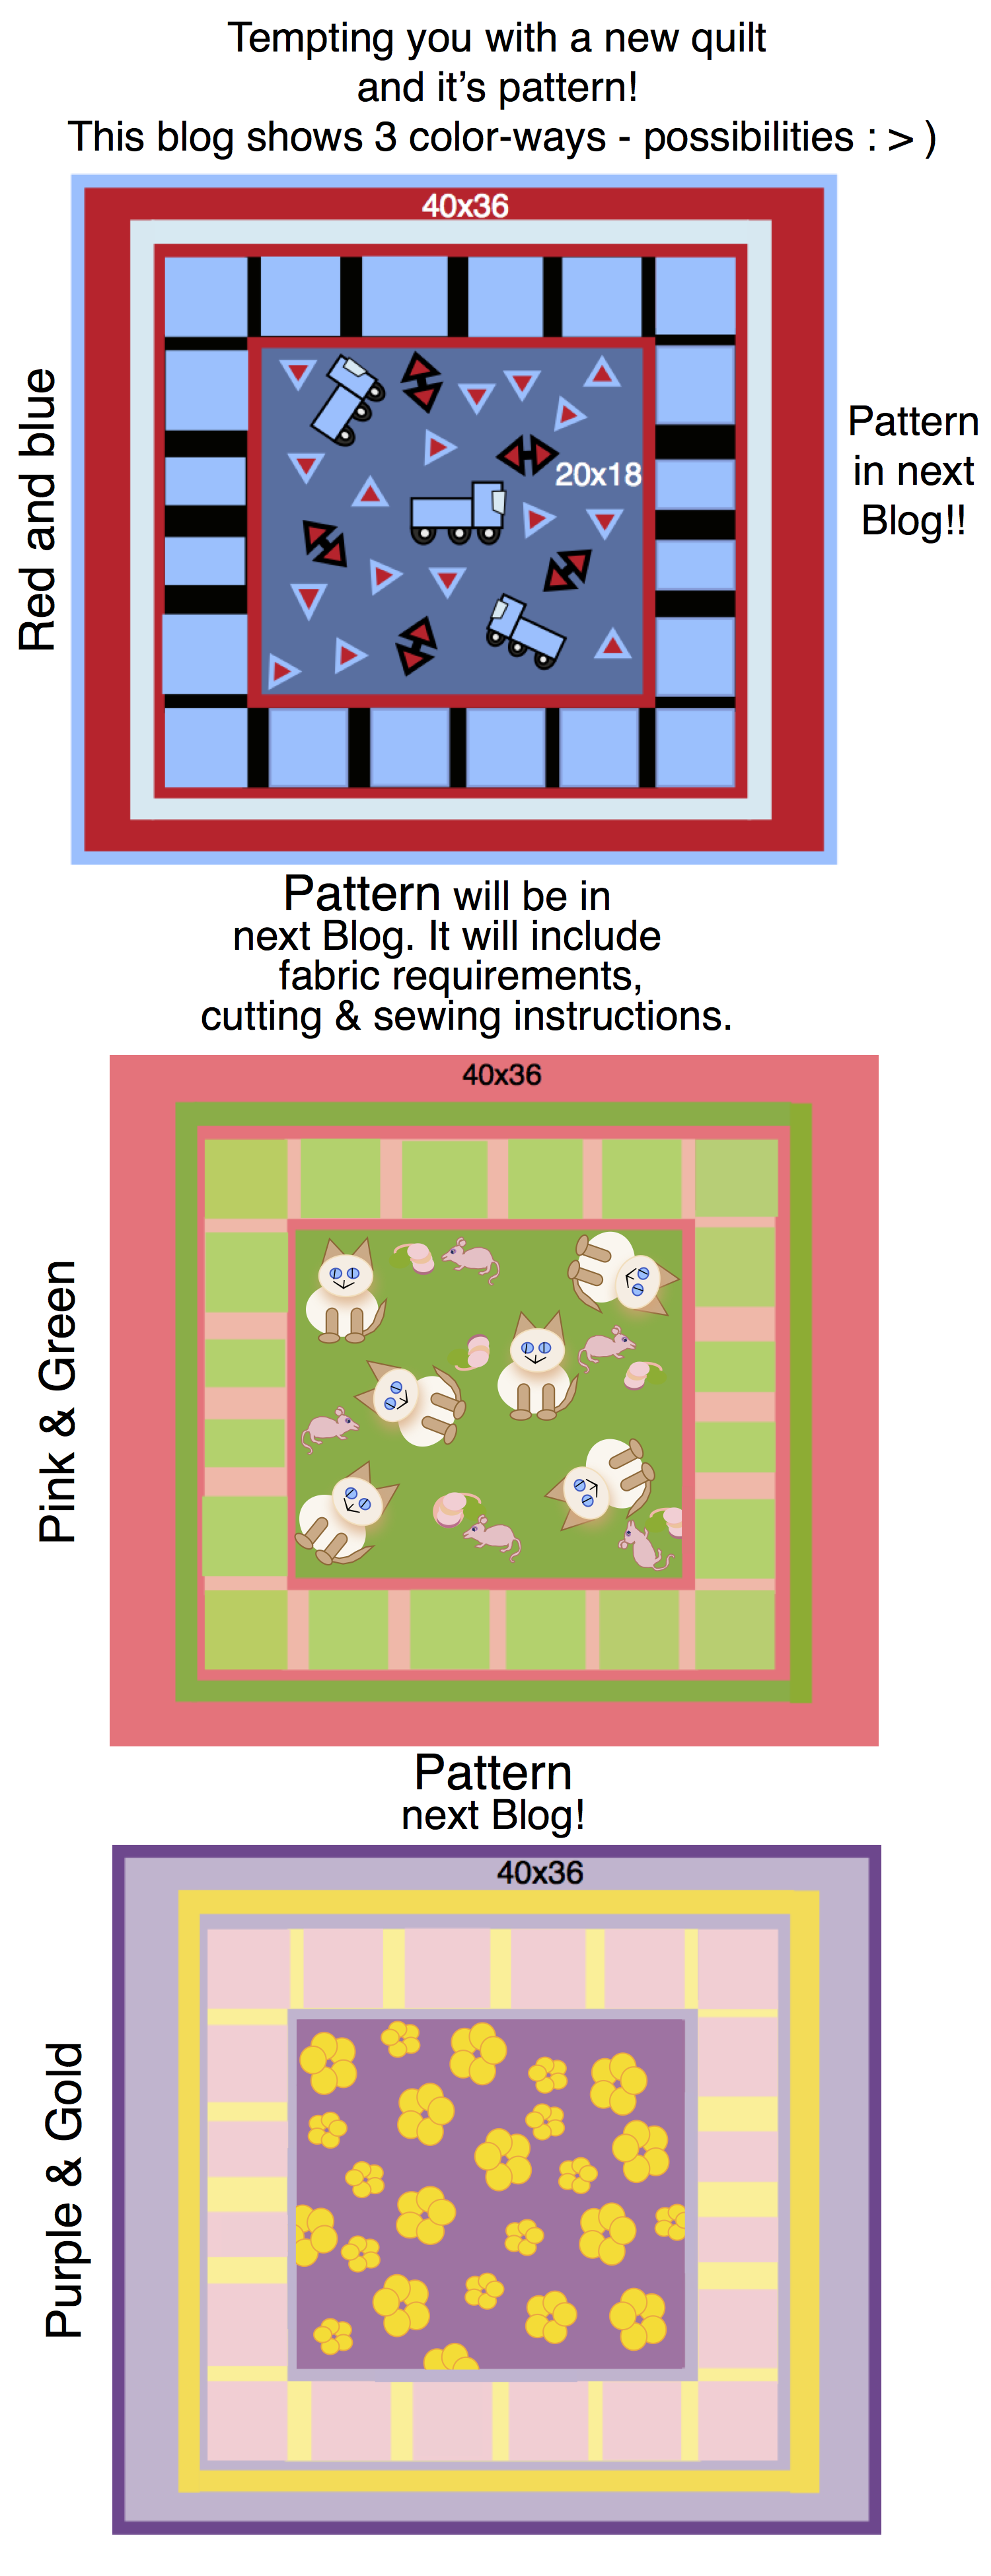 Three color ways for 'Little Quilt'  Pattern (to come in next blog)